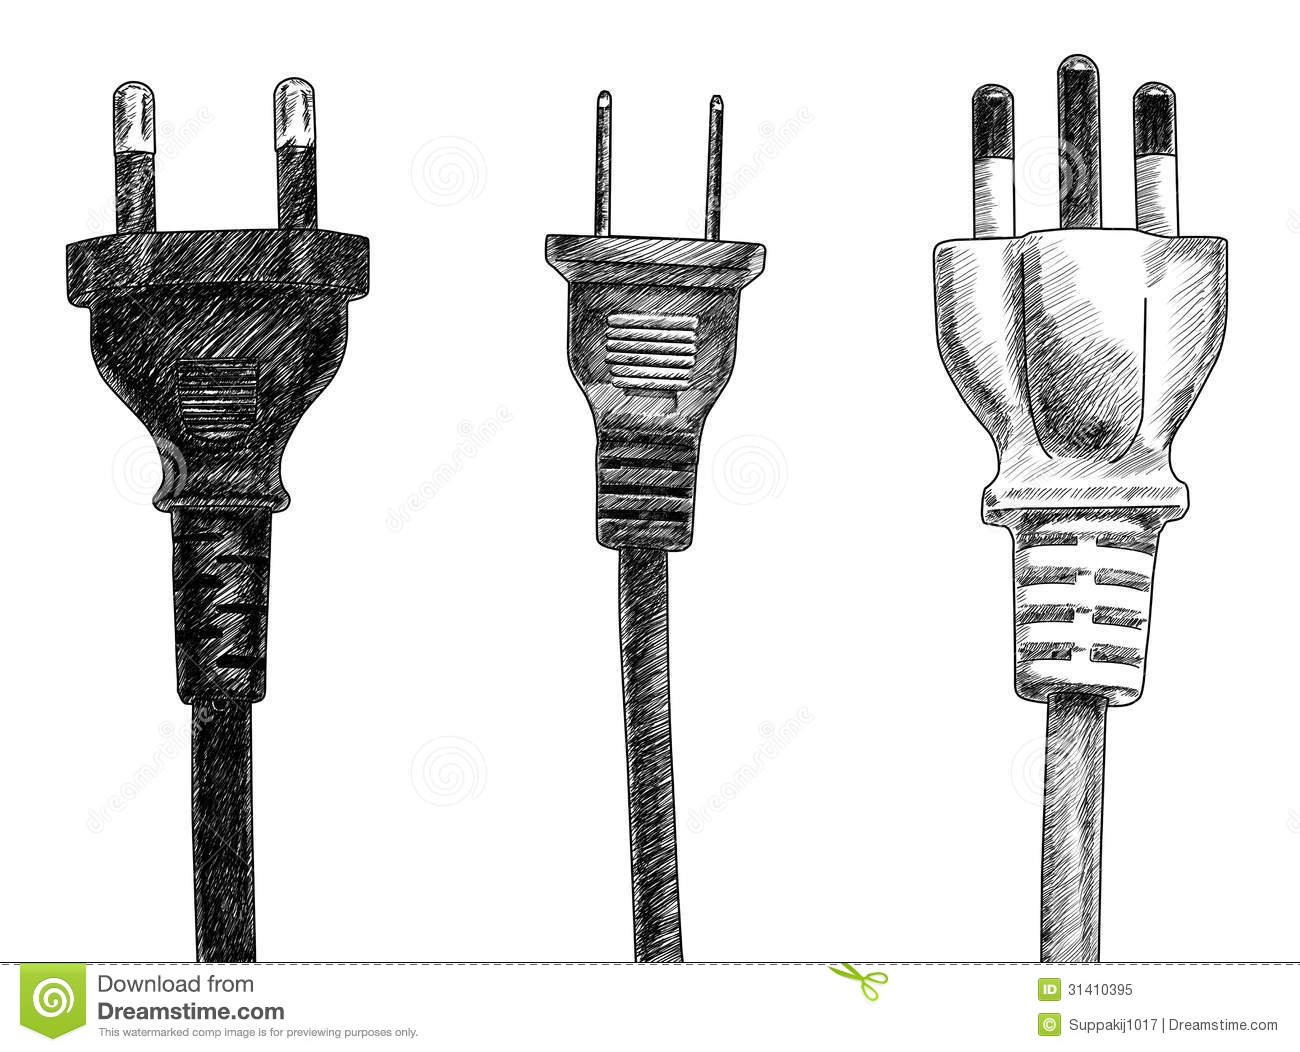 Plugs stock illustration. Illustration of object